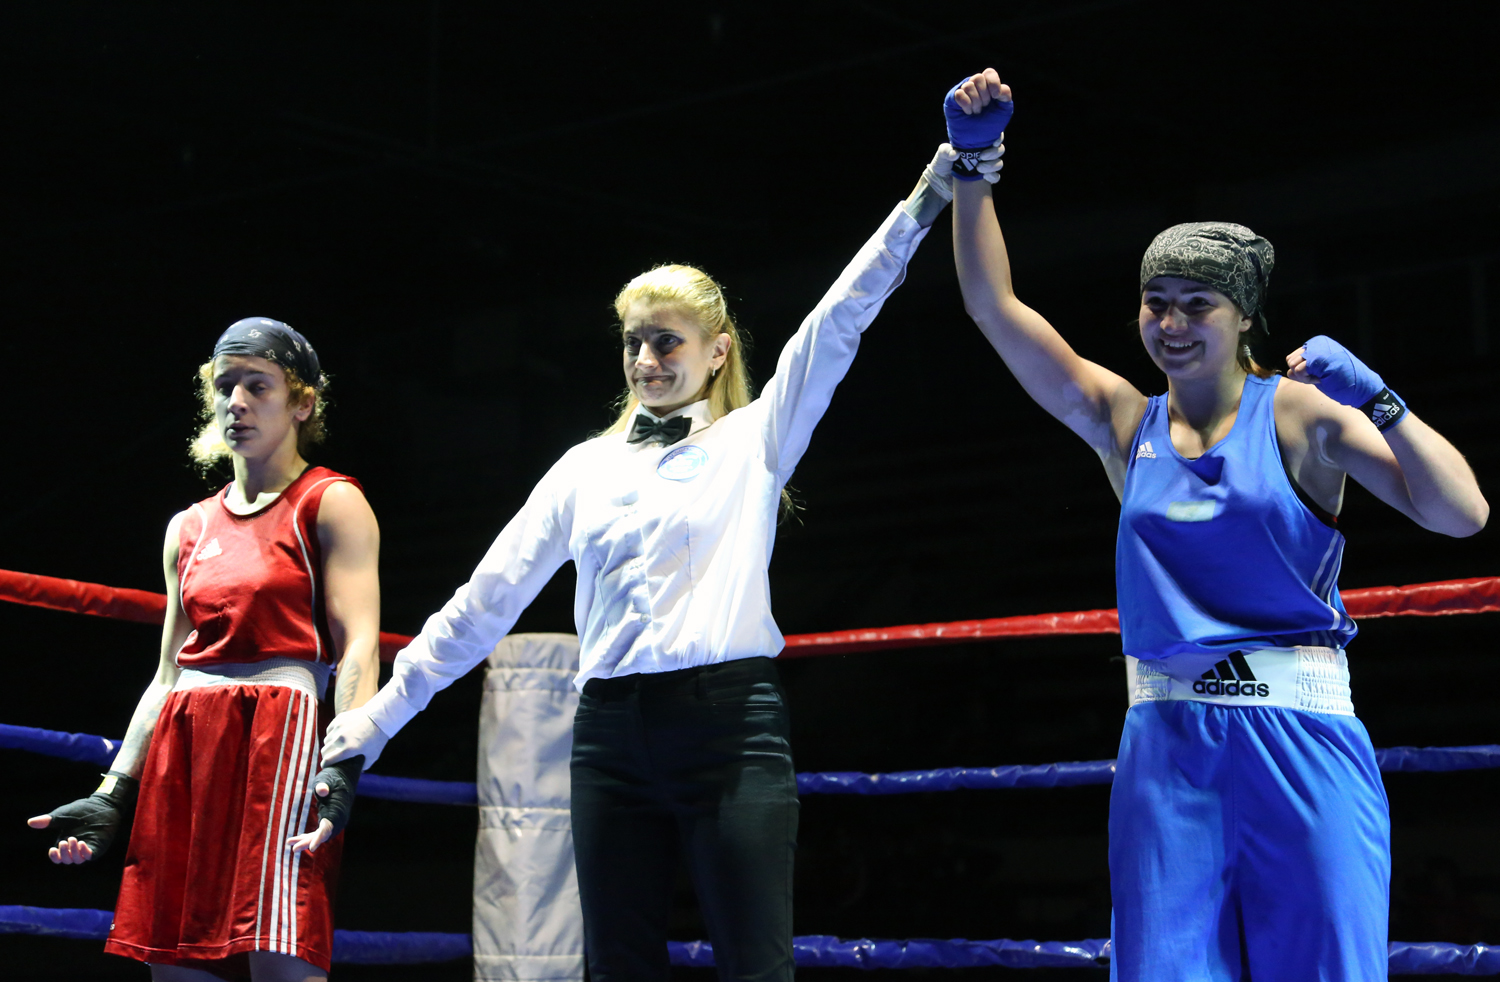 Kazakhstan women boxers achieved four victories on the first day of the Nations Cup